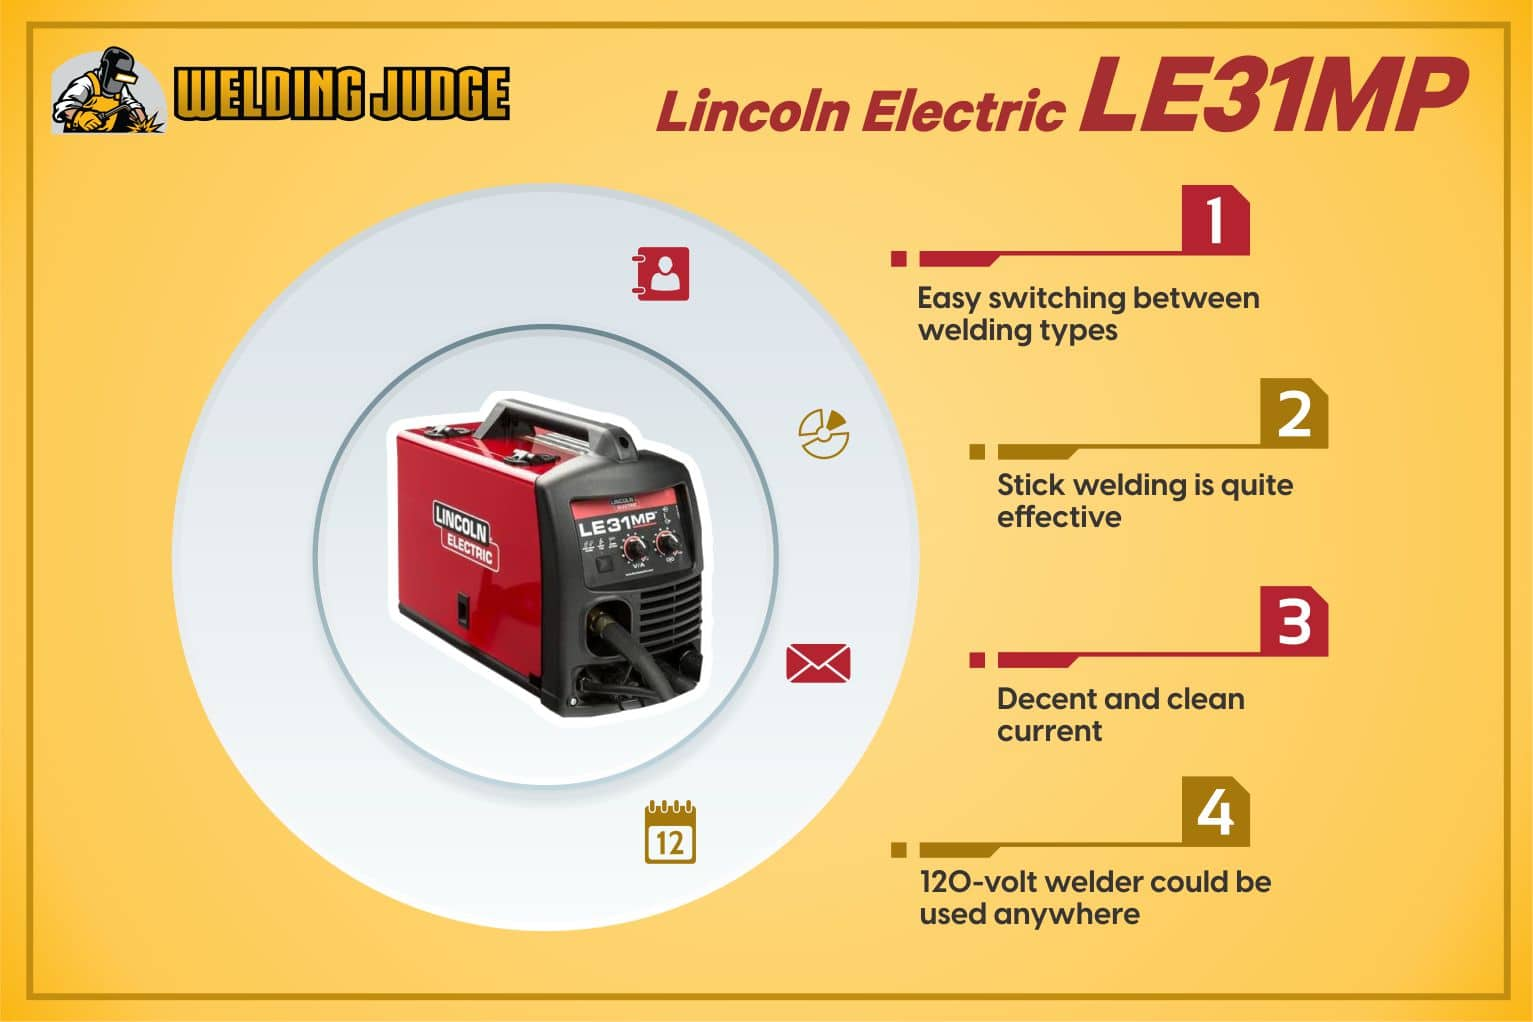 Lincoln Electric LE31MP Infographic Review